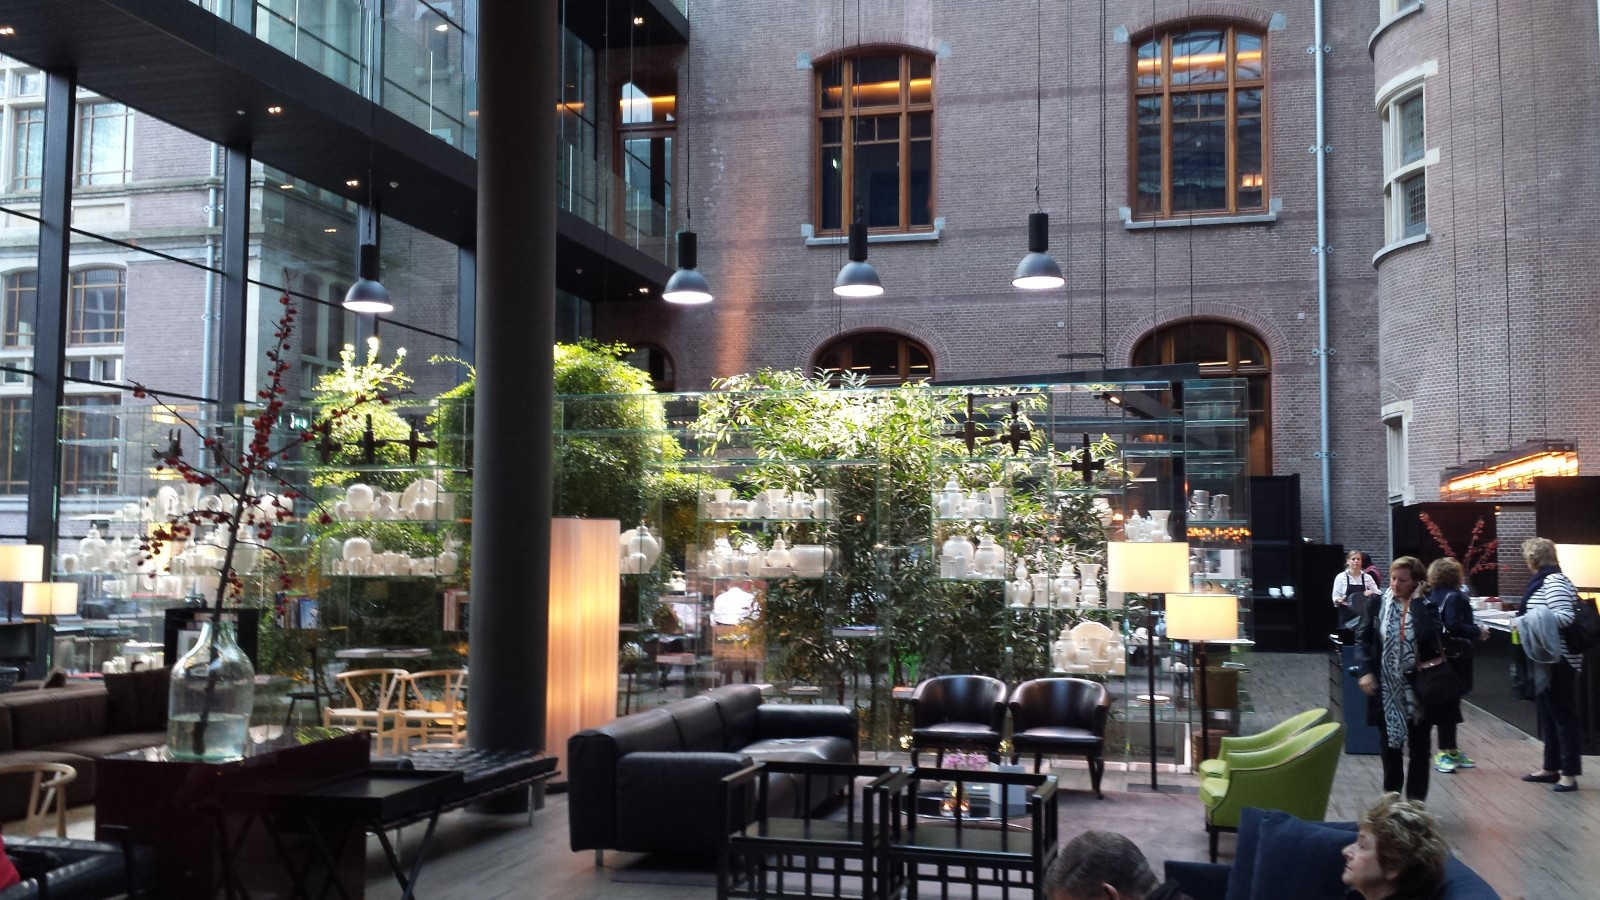 20141003_084511 The Conservatorium Hotel